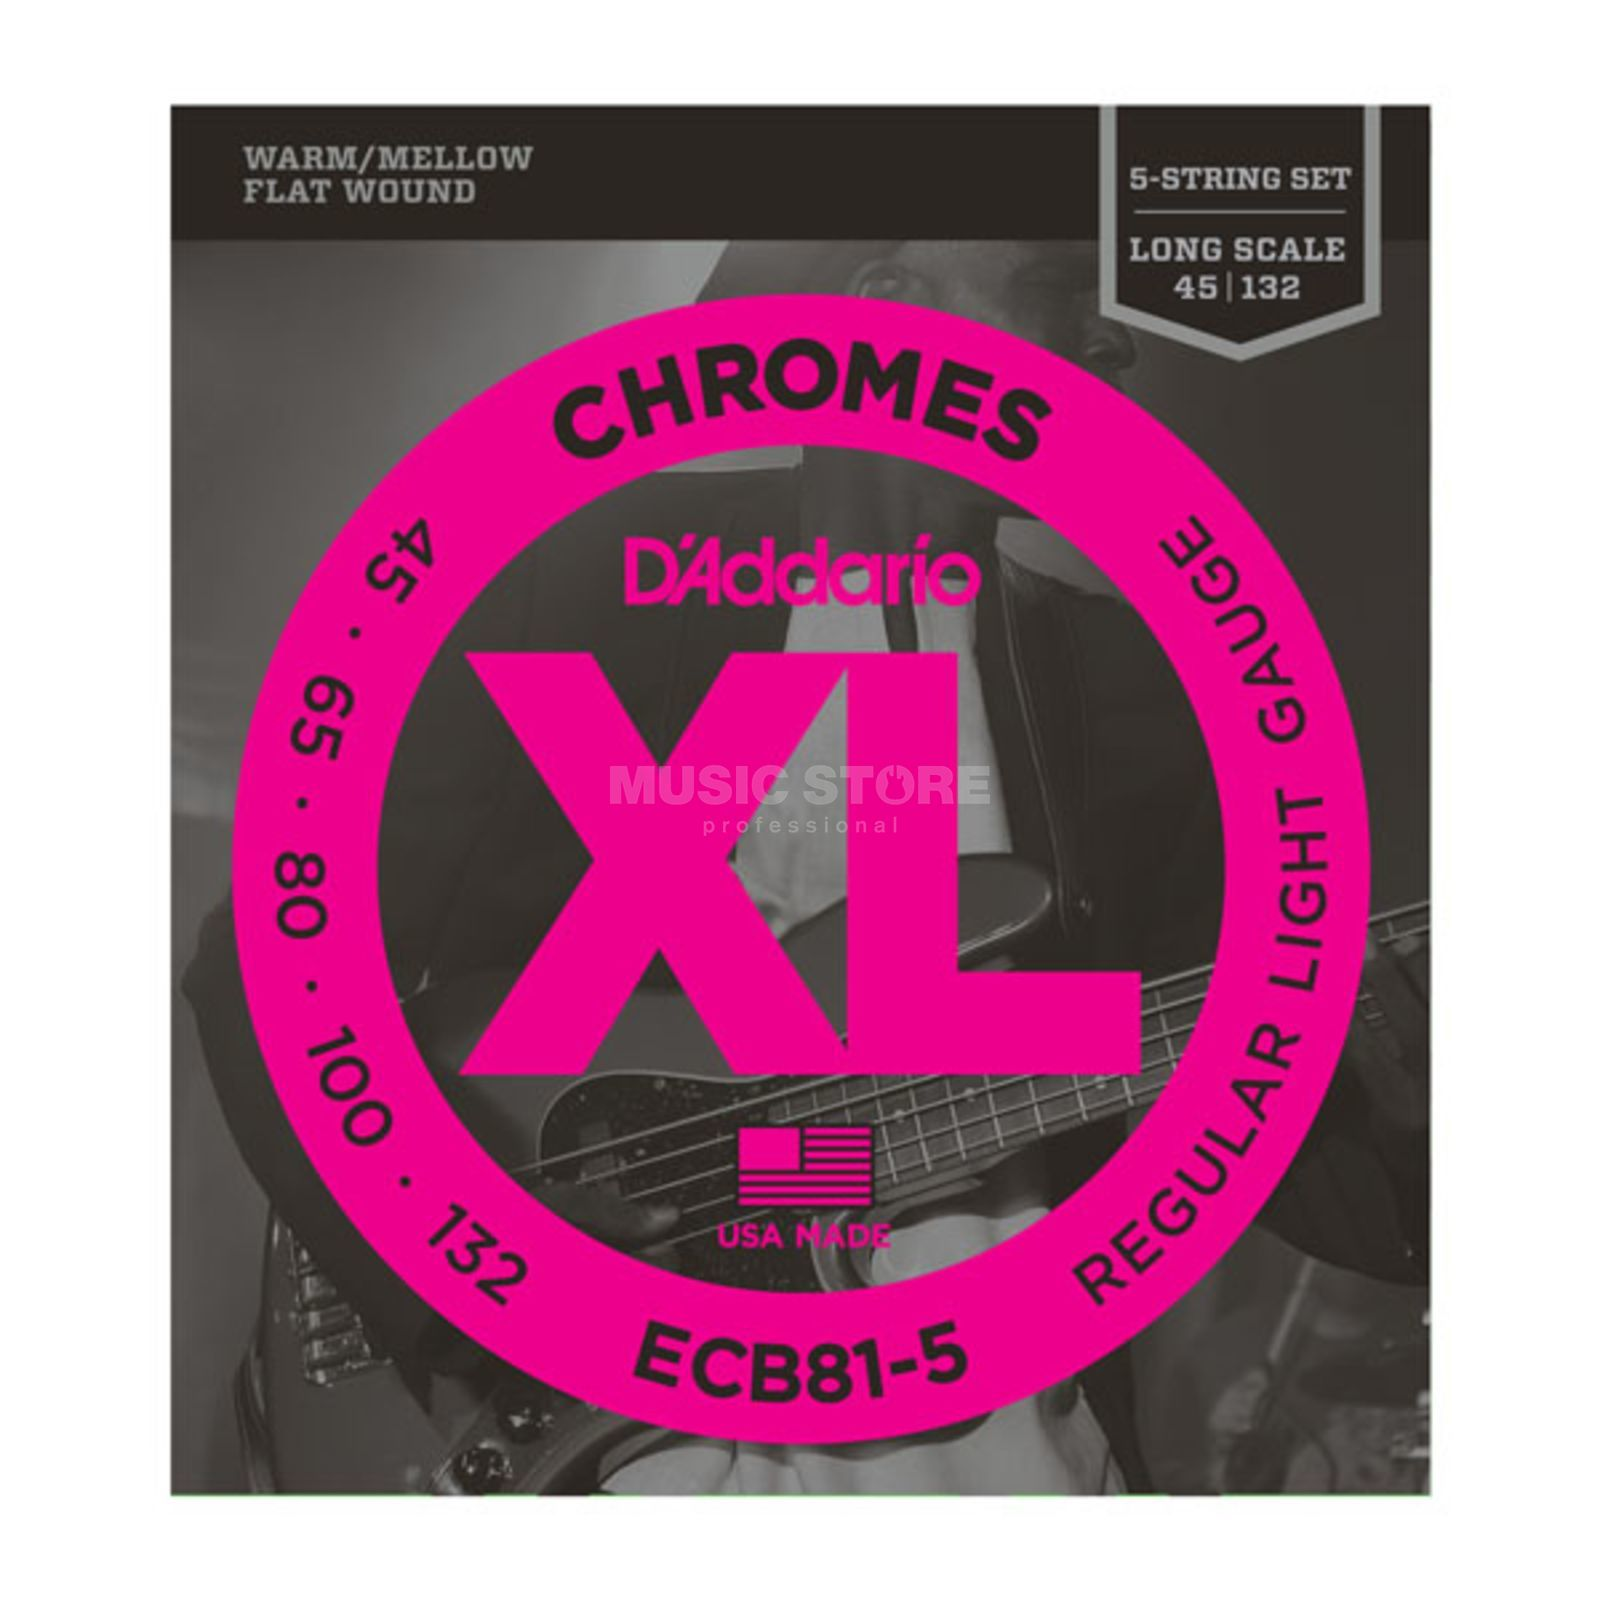 D'Addario ECB81-5 45-132 Chromes 5 cuerdas Flatwound Stainless Imagen del producto